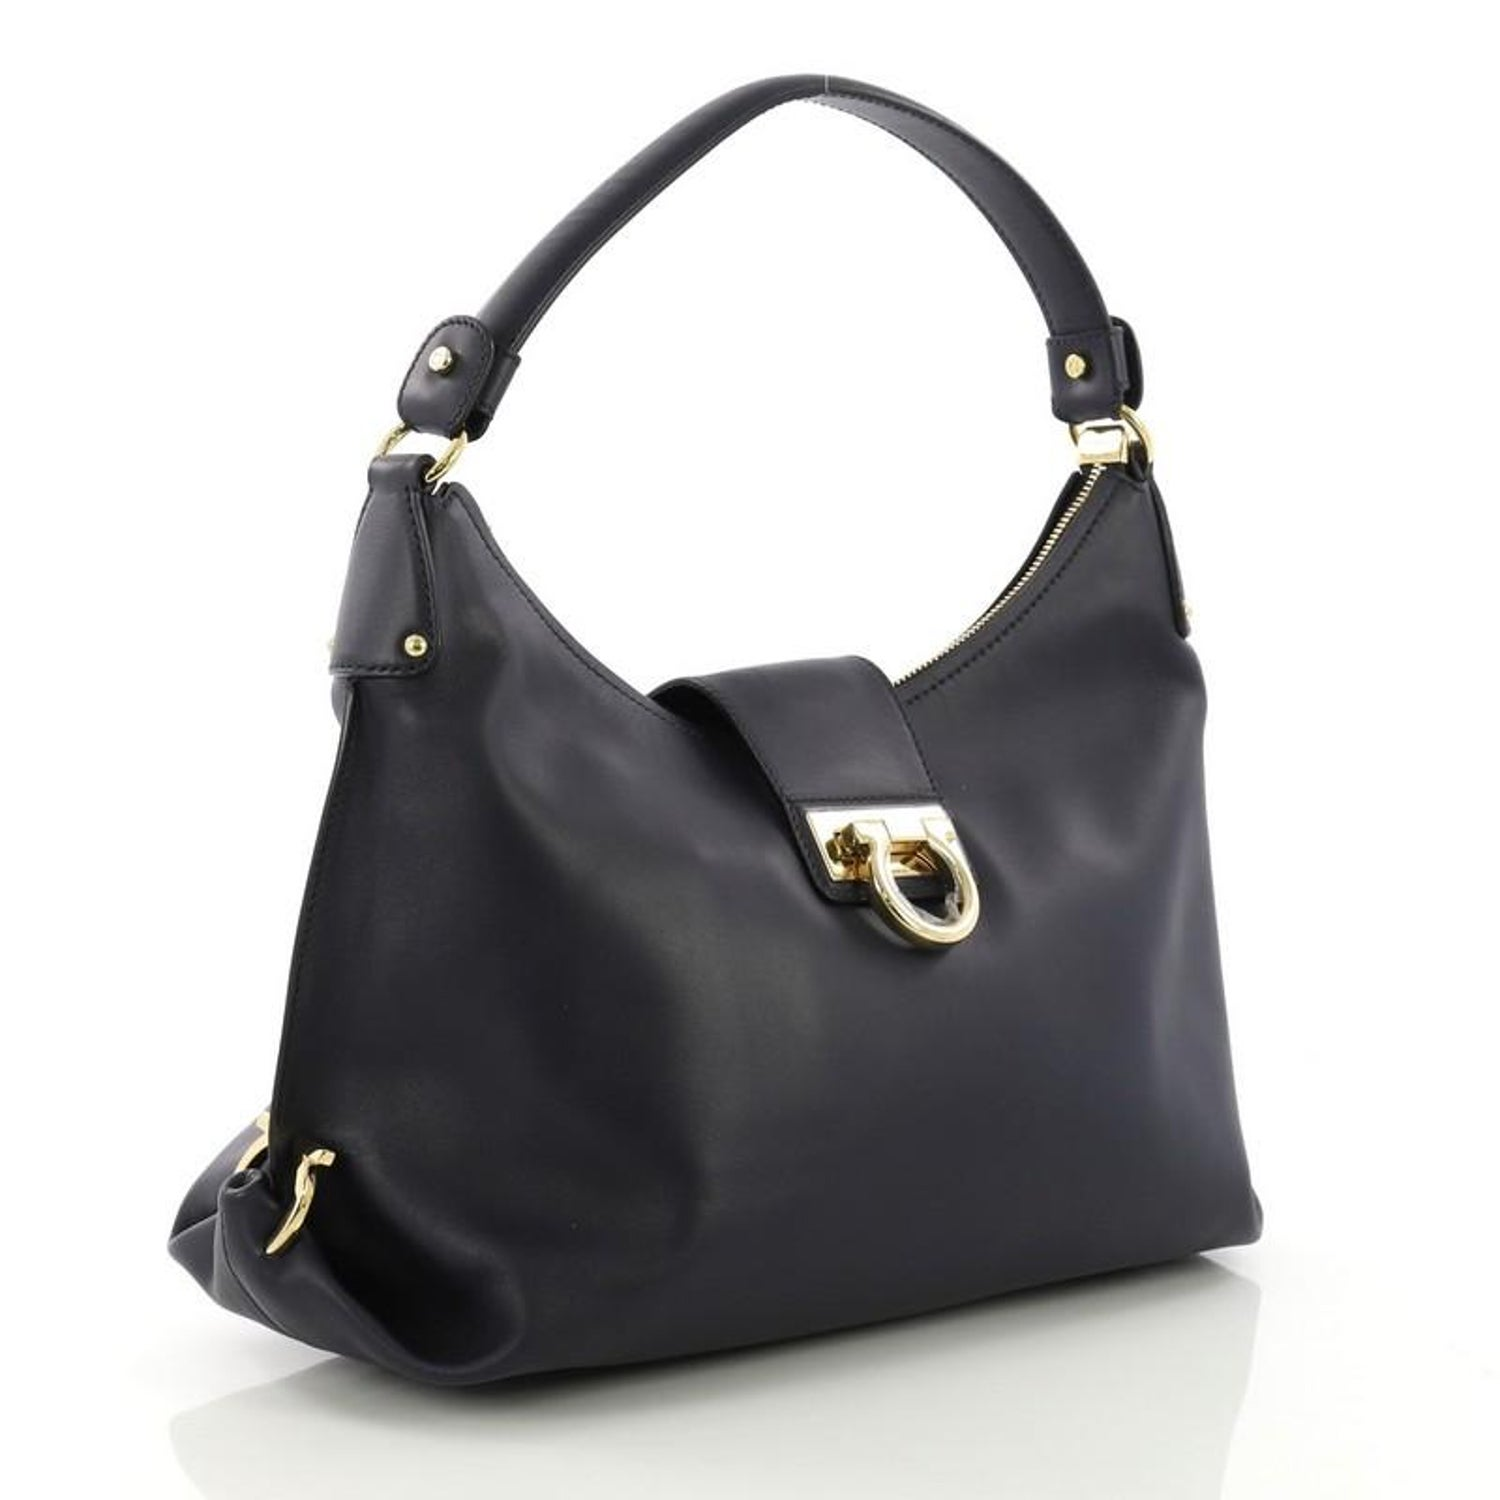 fe7e660d6b Salvatore Ferragamo New Fanisa Hobo Leather Small At 1stdibs. Quilted  Gancini Double Handle Bag